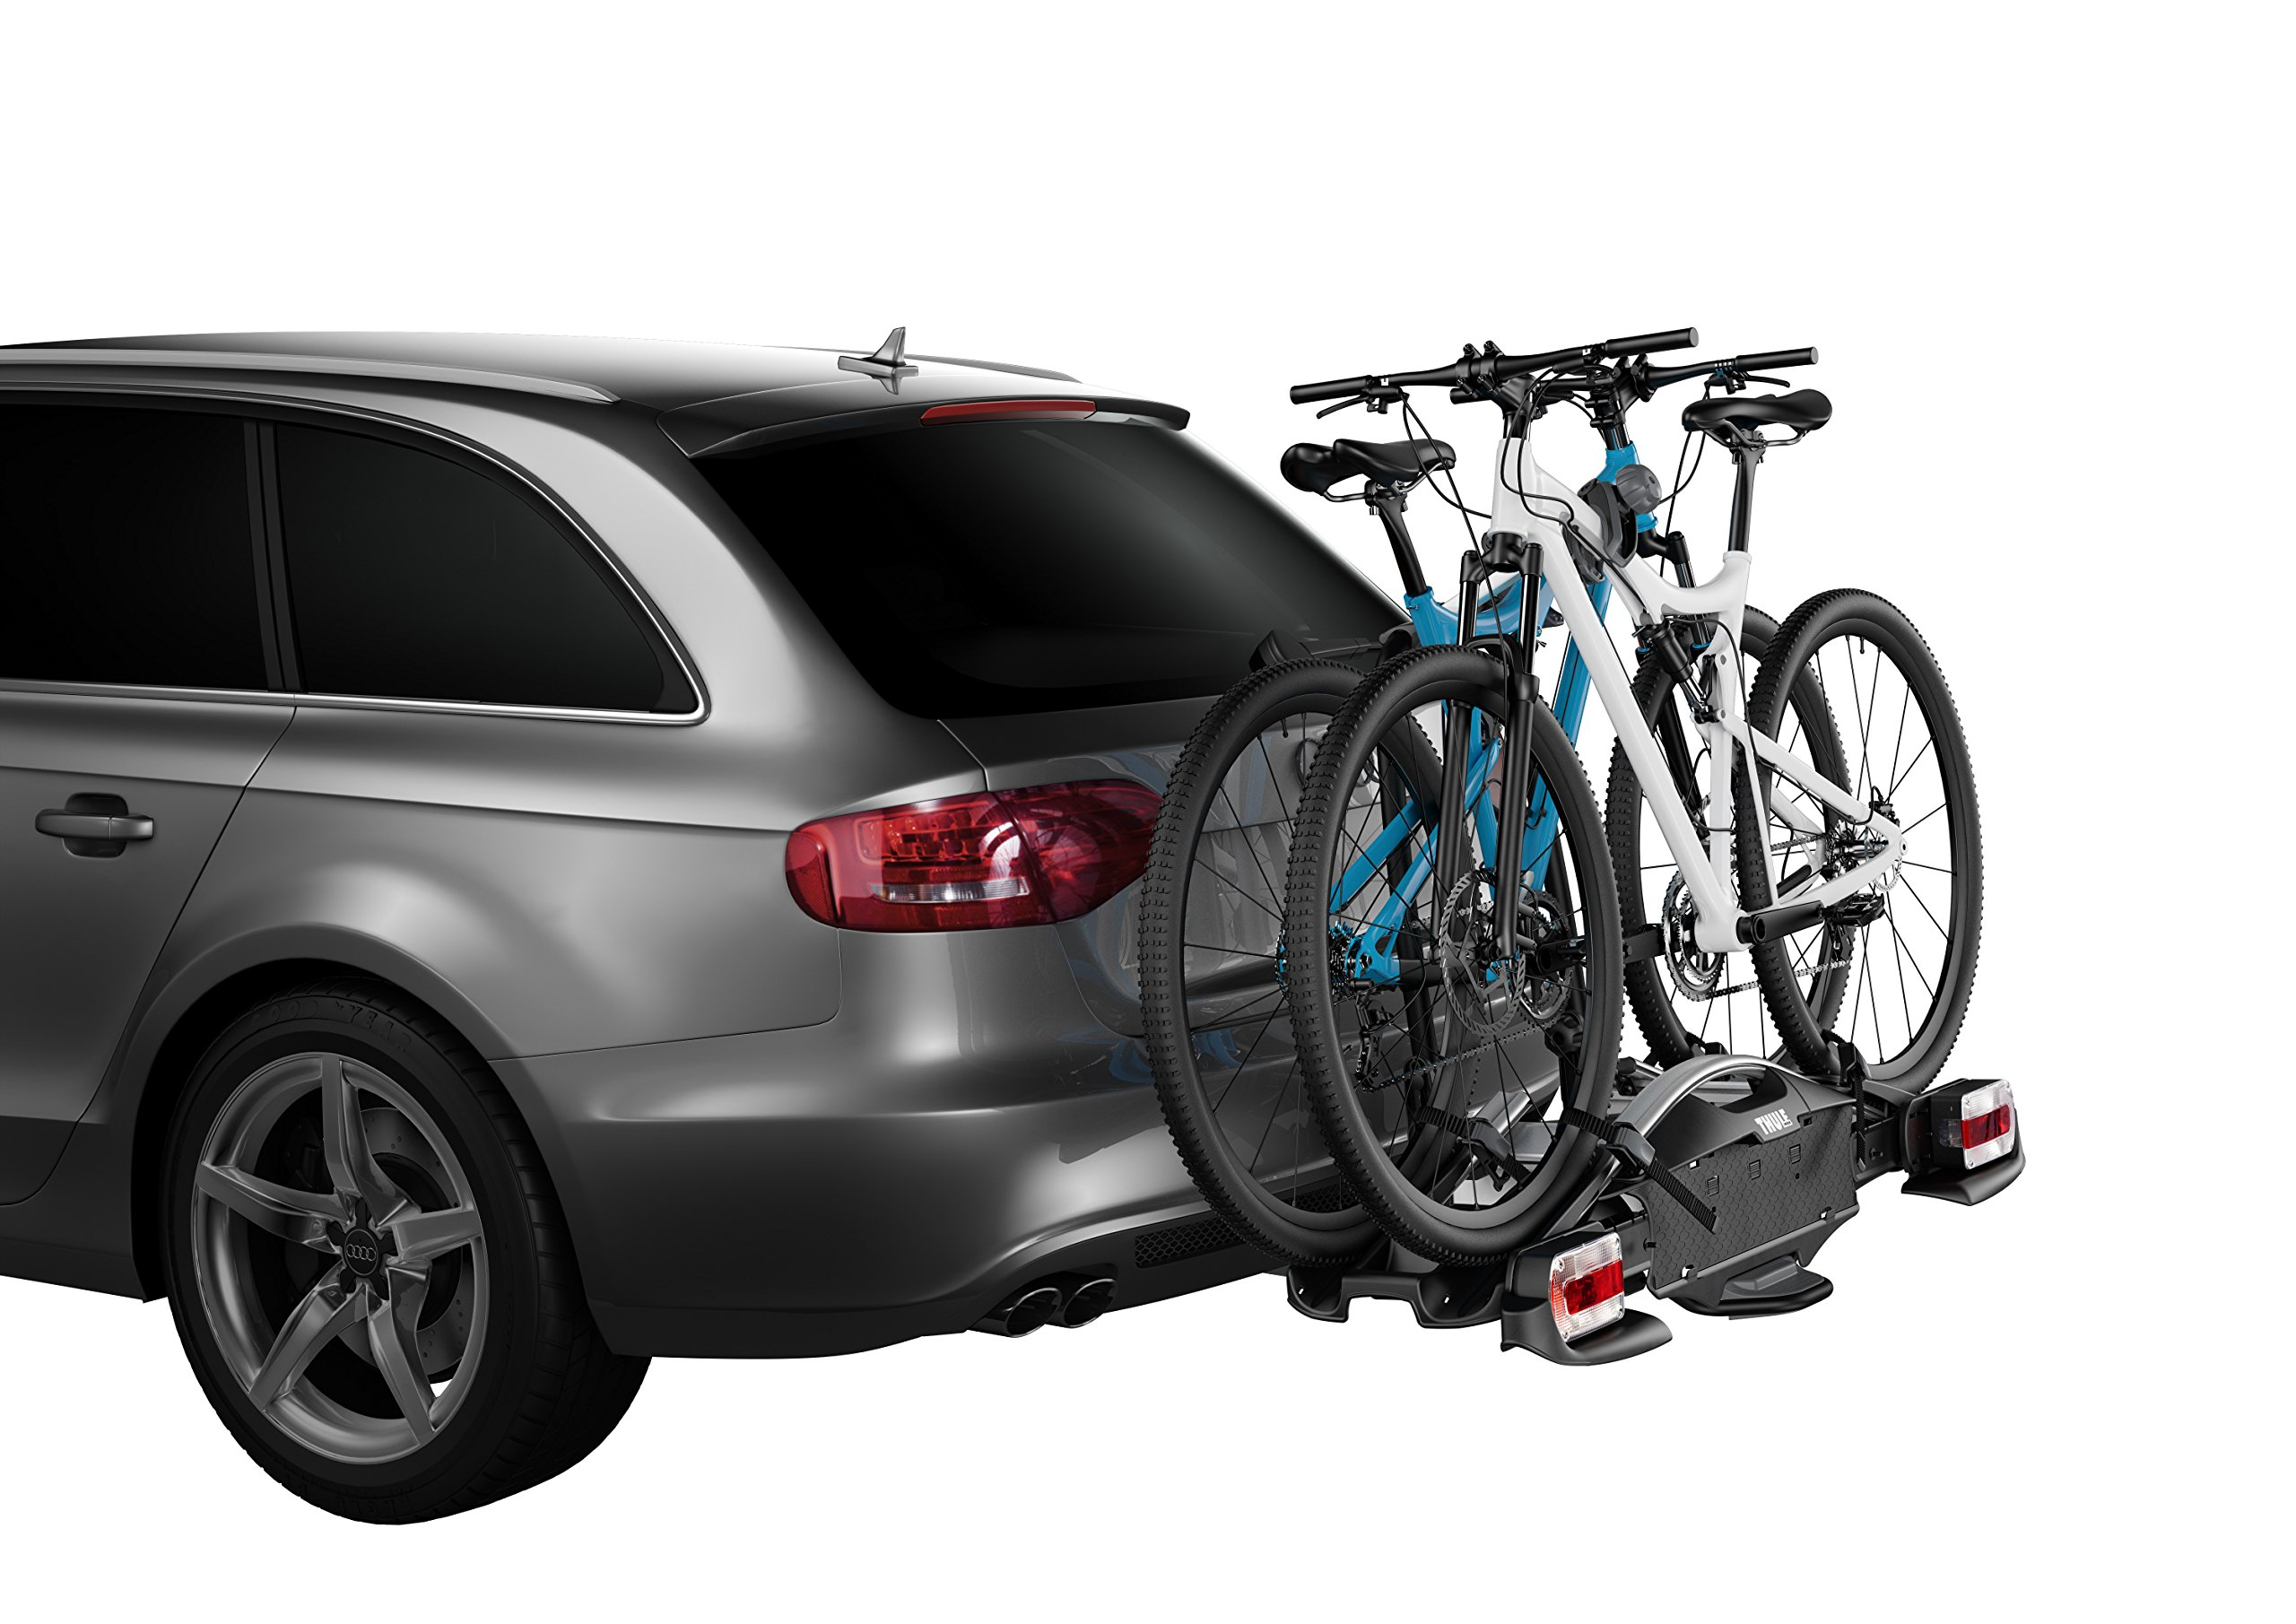 Thule 925001,Velo Compact 925, 2Bike, Towball Carrier, 7 pin 10